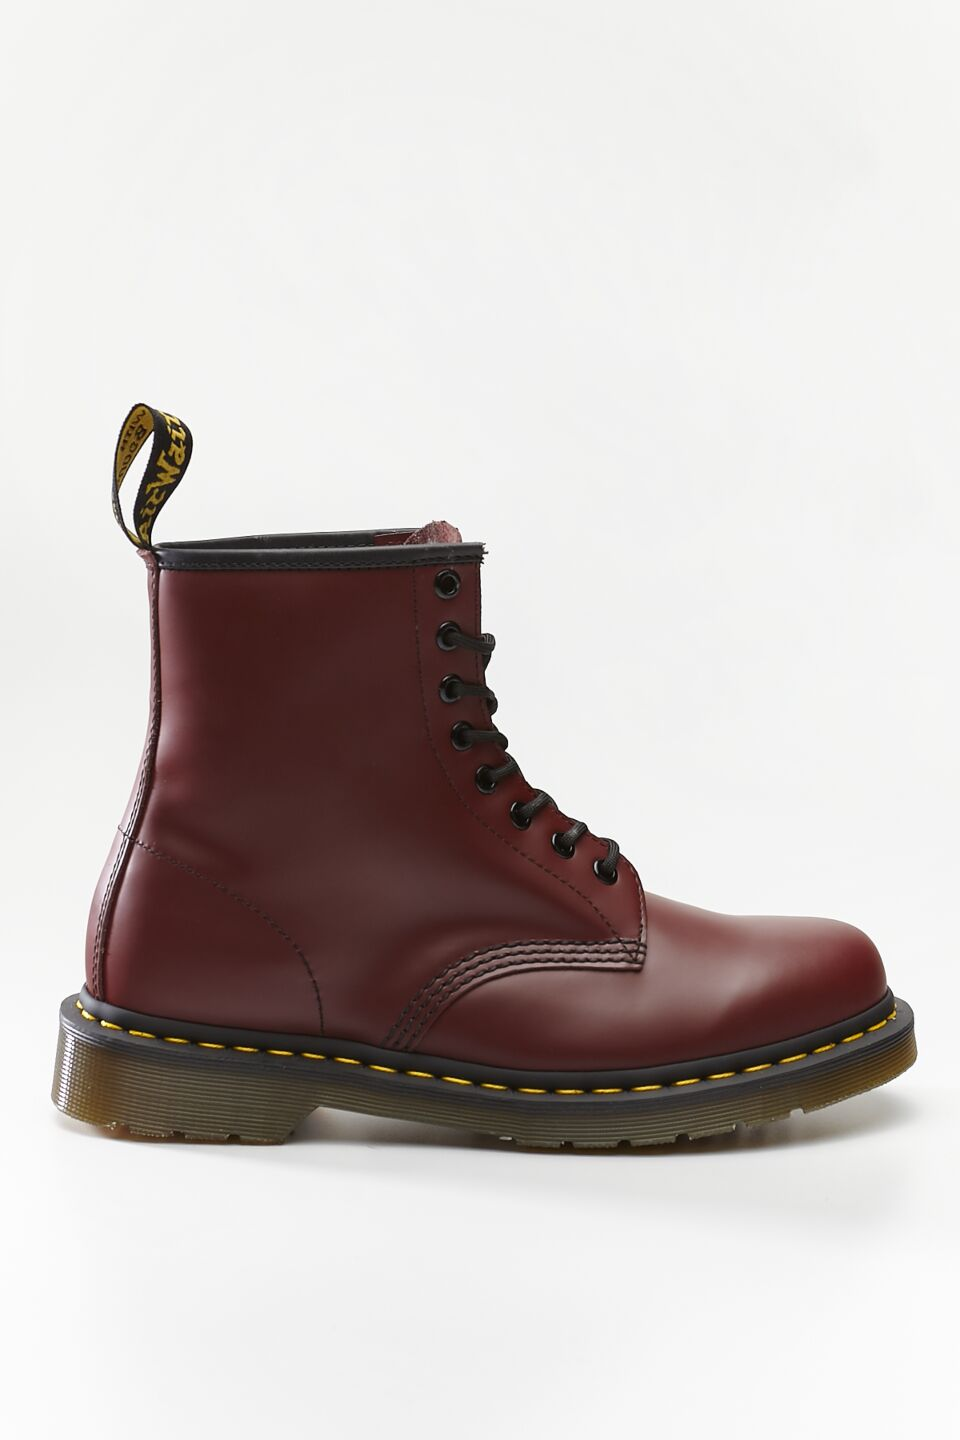 1460 SMOOTH DM11822600 CHERRY RED SMOOTH